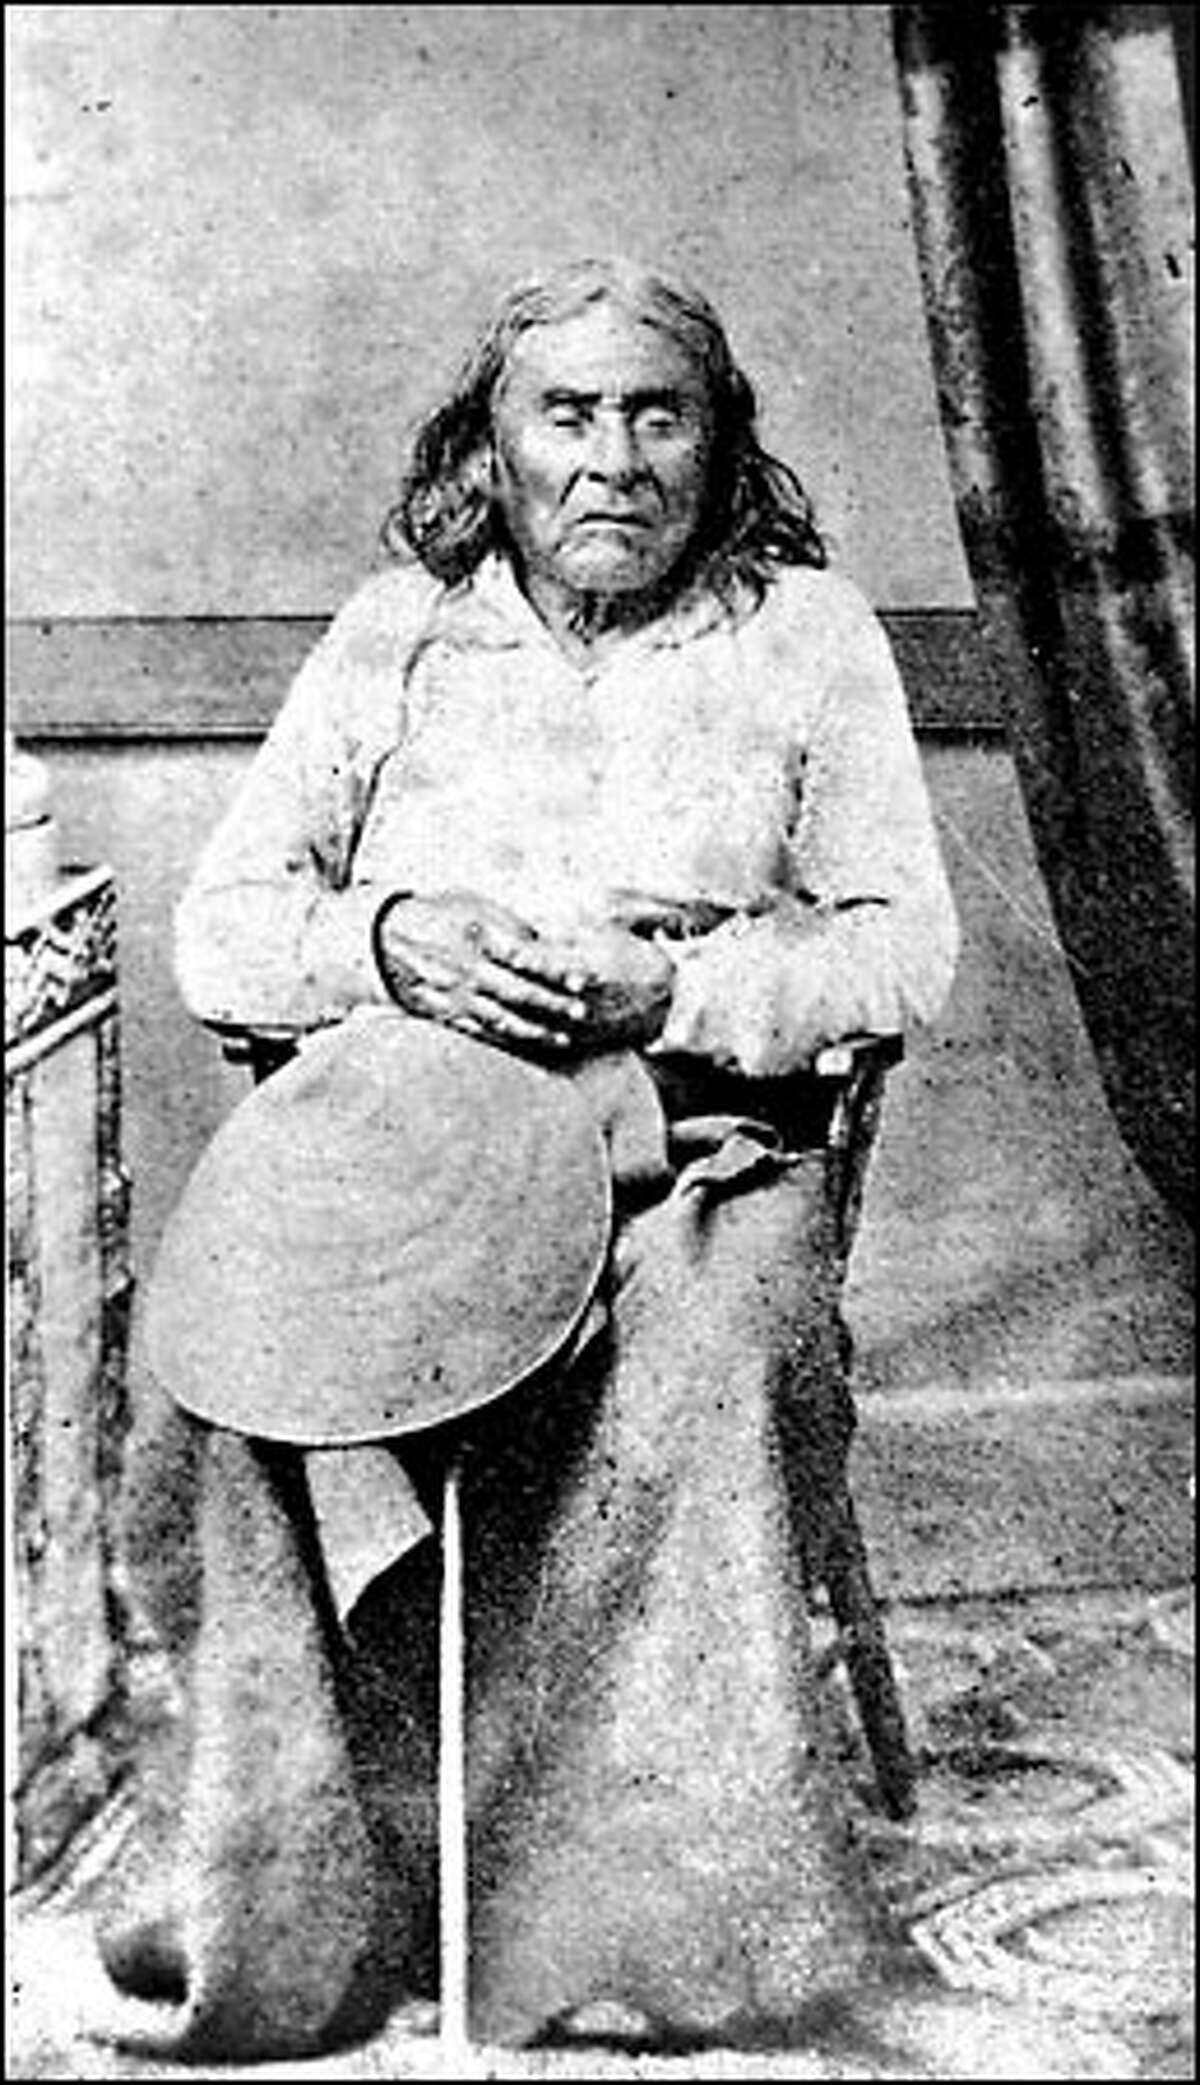 City namesake, 1860s: As the Denny party huddled through the winter of 1851-52 on Alki Point, a band of Duwamish led by Chief Seattle helped the settlers find food and shelter. In 1852, Chief Seattle (178?-1866) persuaded Doc Maynard to move his store from Nisqually to the new village of Duwumps. Maynard, in turn, got the settlers to name their new town after the chief.